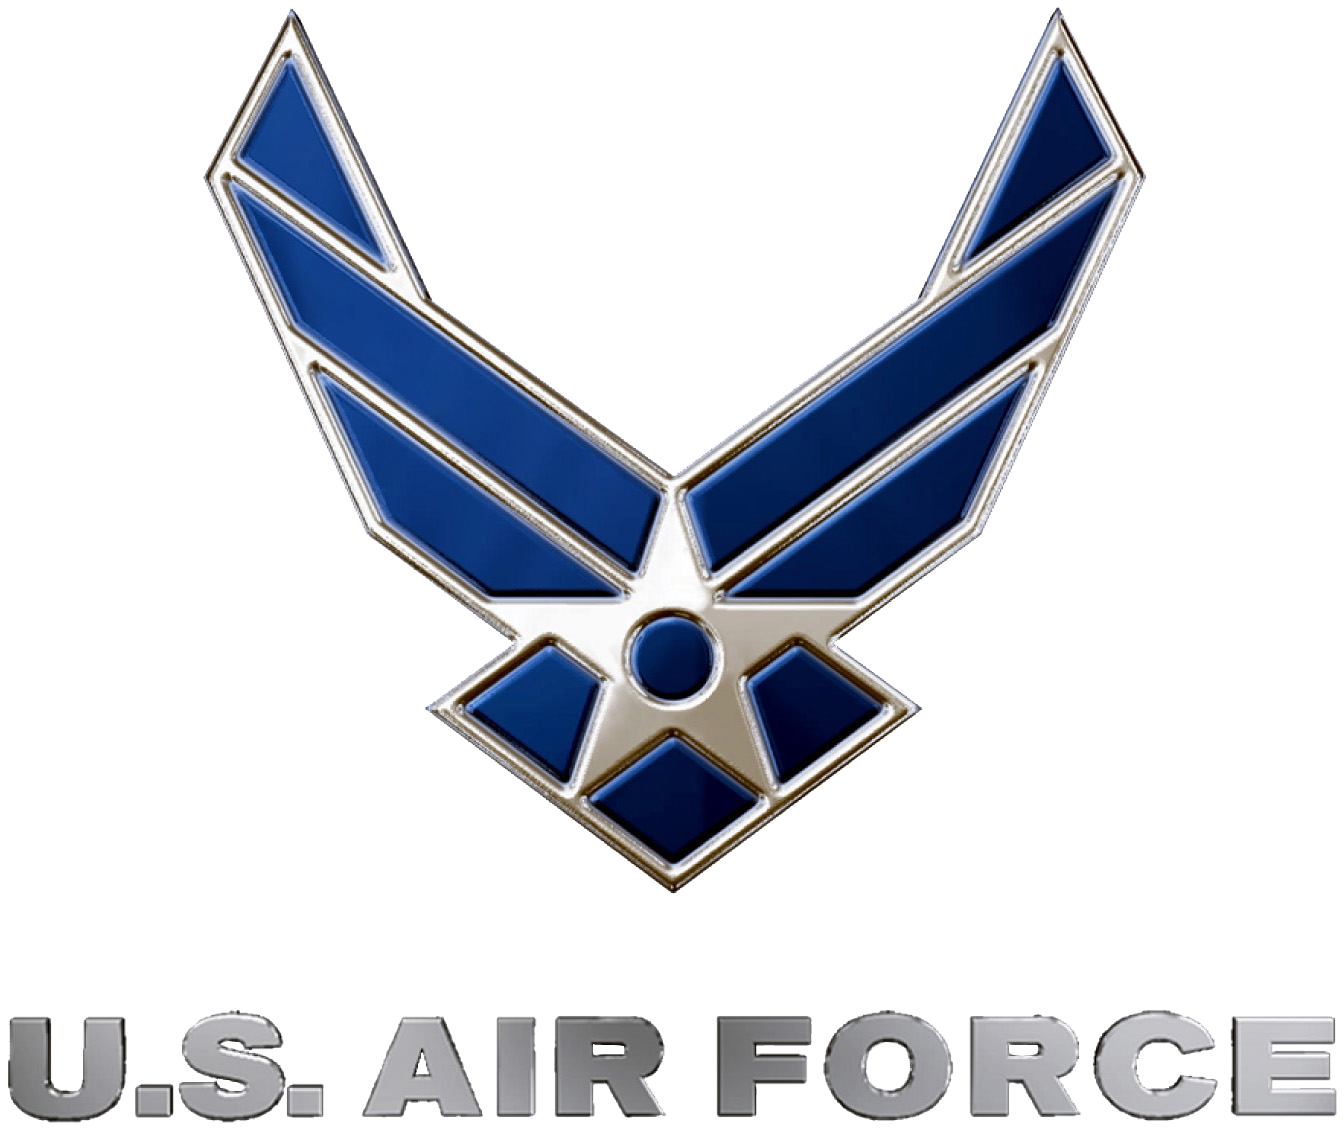 United States Air Force Symbol.